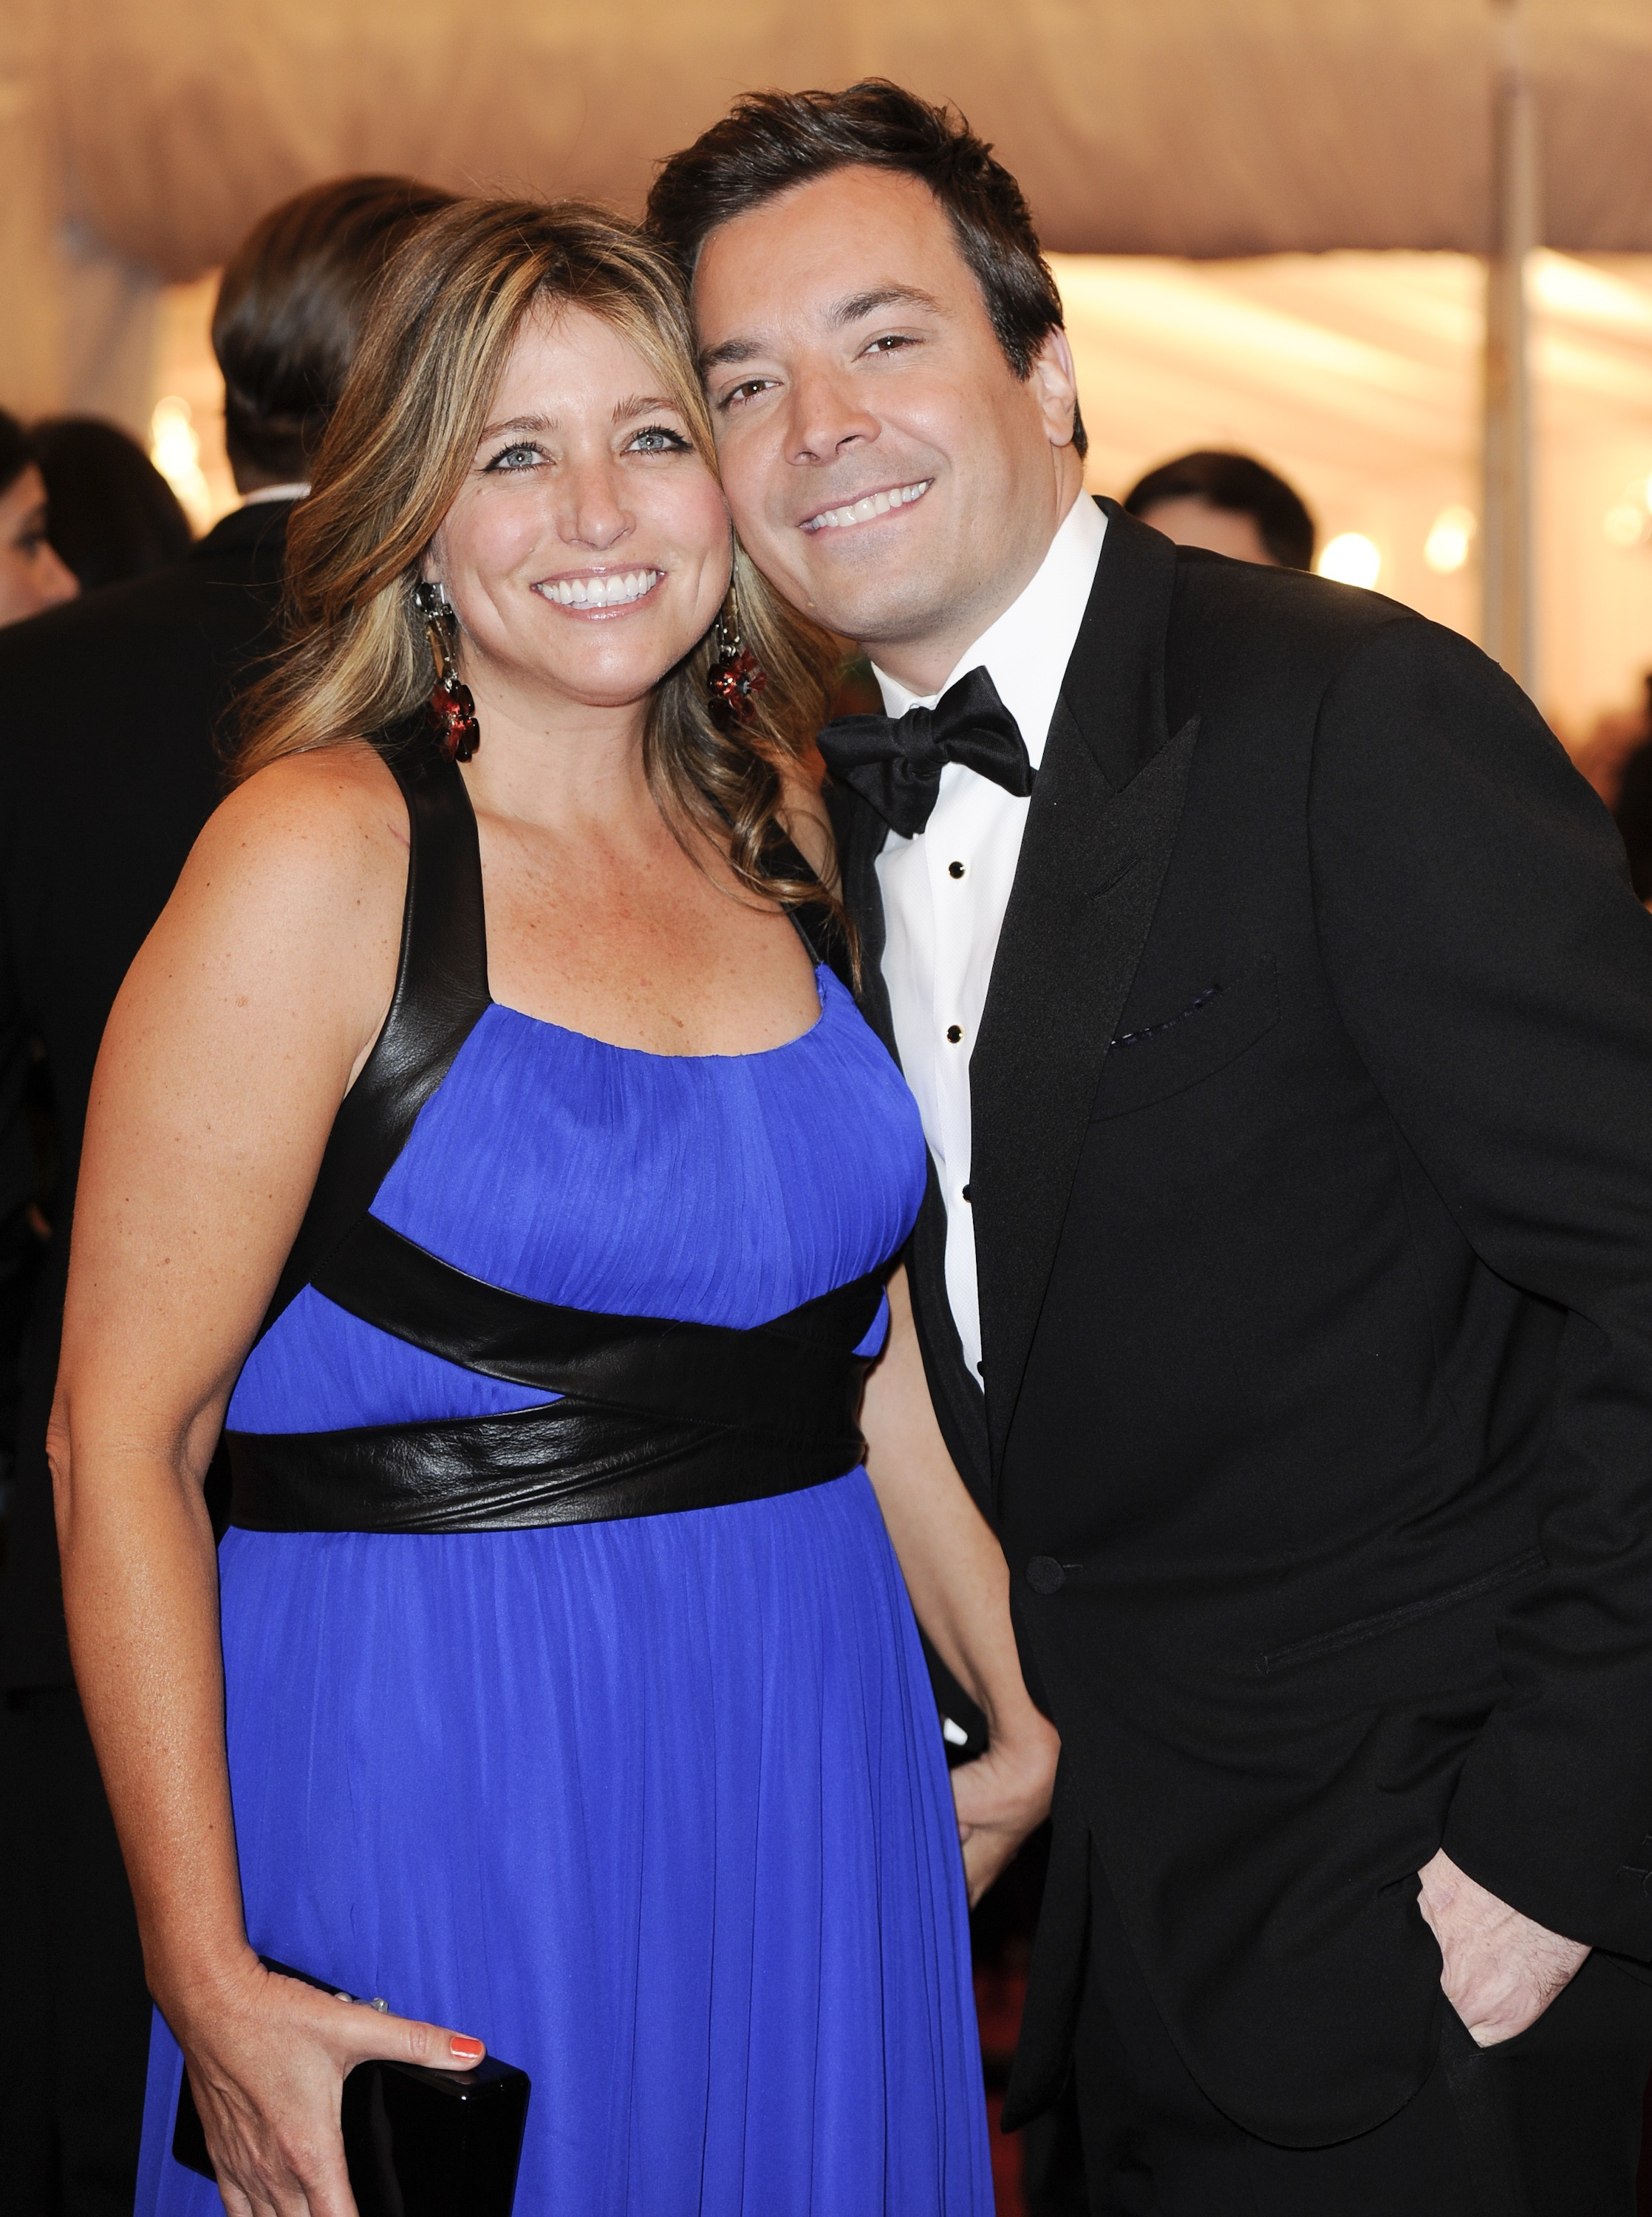 Jimmy Fallon baby welcomes daughter baby girl wife surrogate pregnant